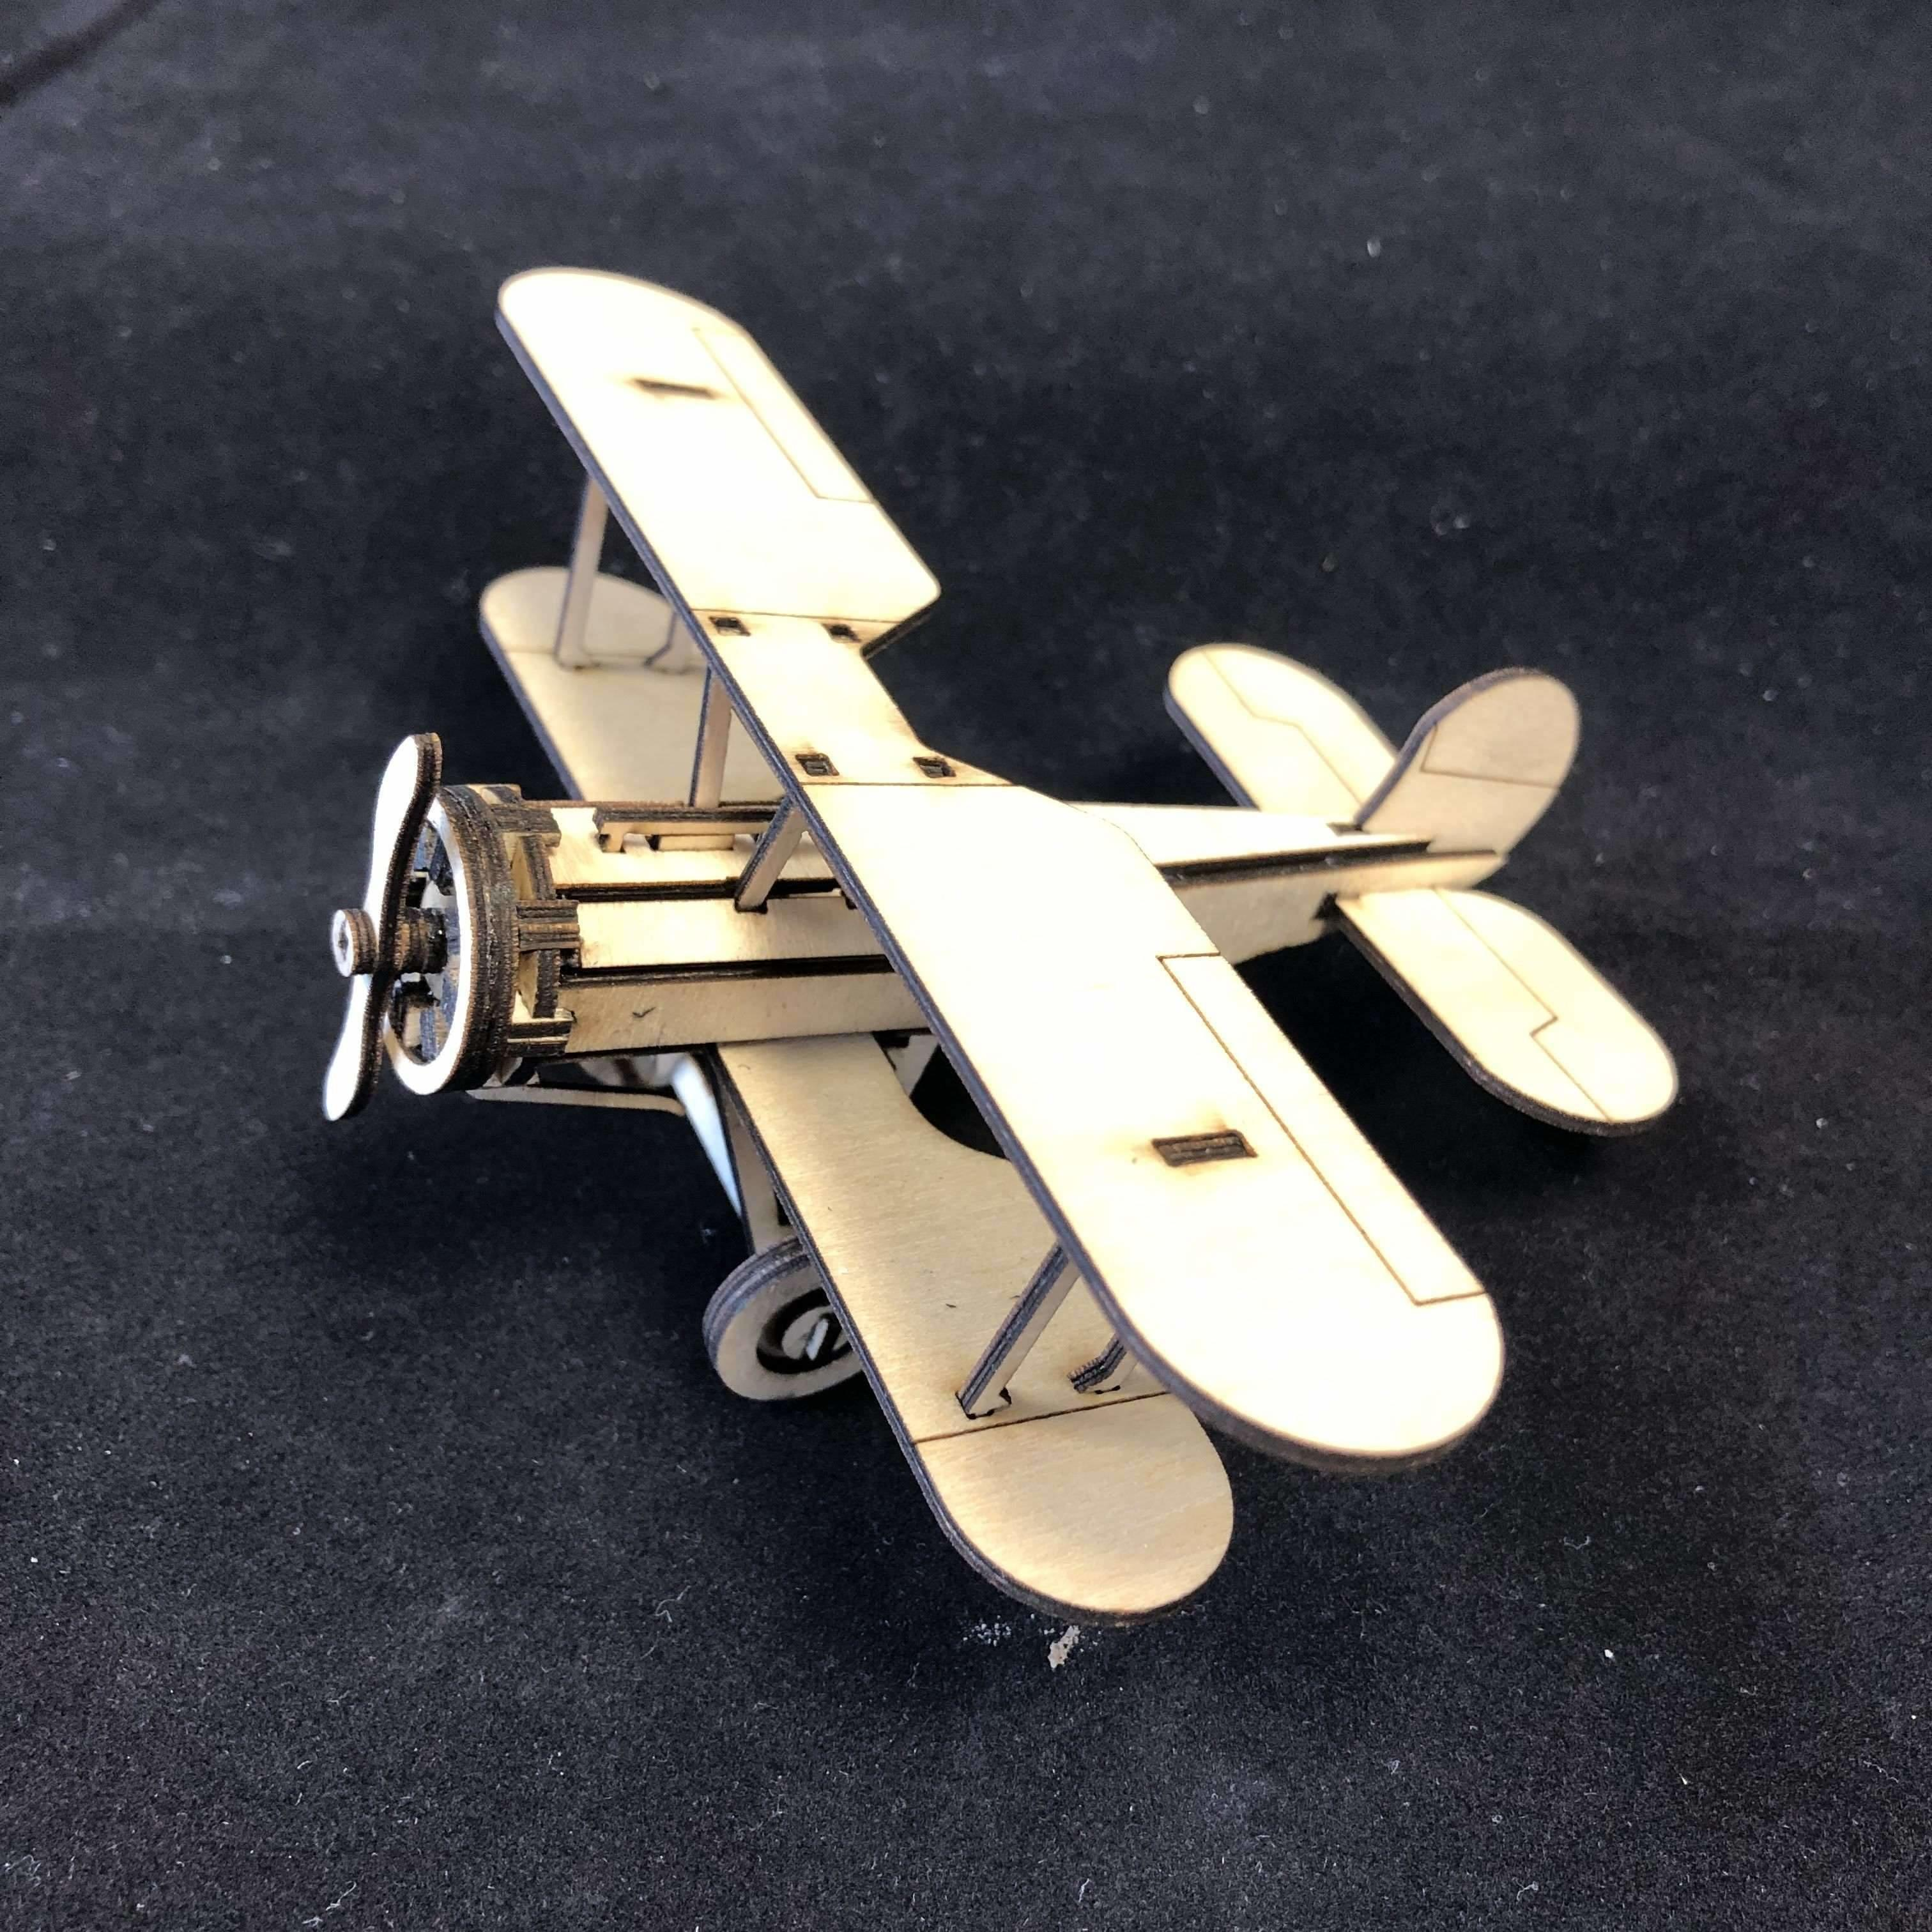 Red Berry Crafts Ltd:Bristol Bulldog F2B 3D Model Kit